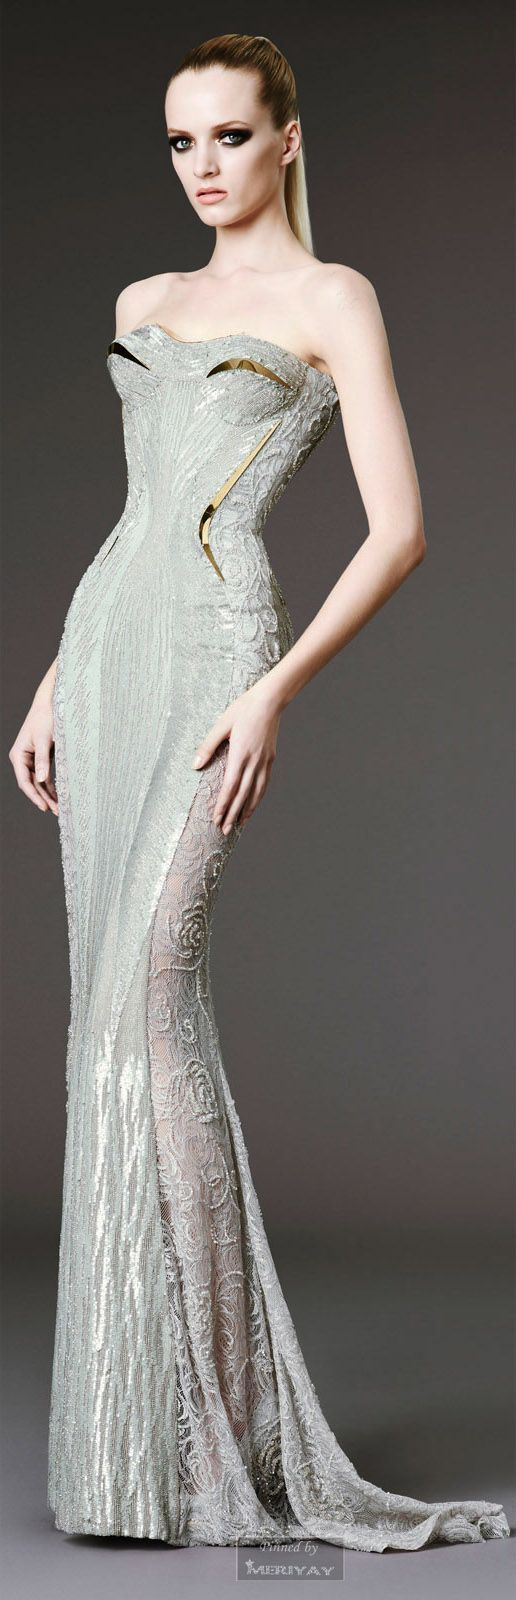 Atelier Versace. Not sure about the gold on the bodice. But I love the rest of the dress: